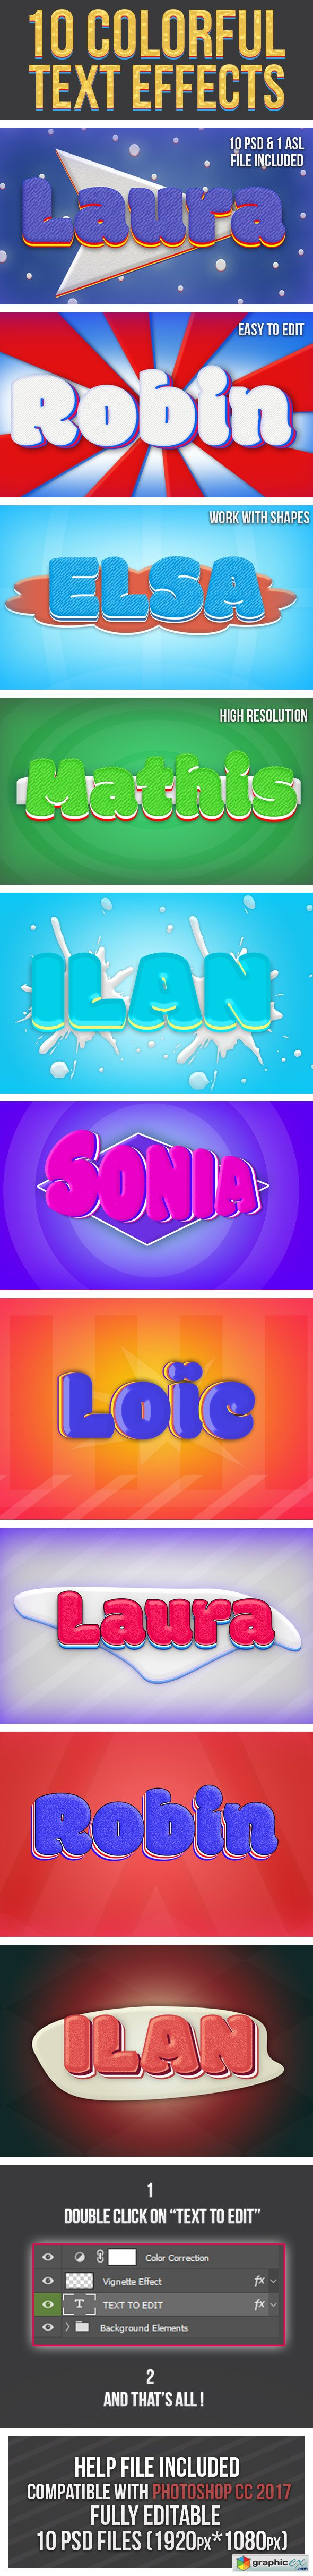 Colorful Text Effects